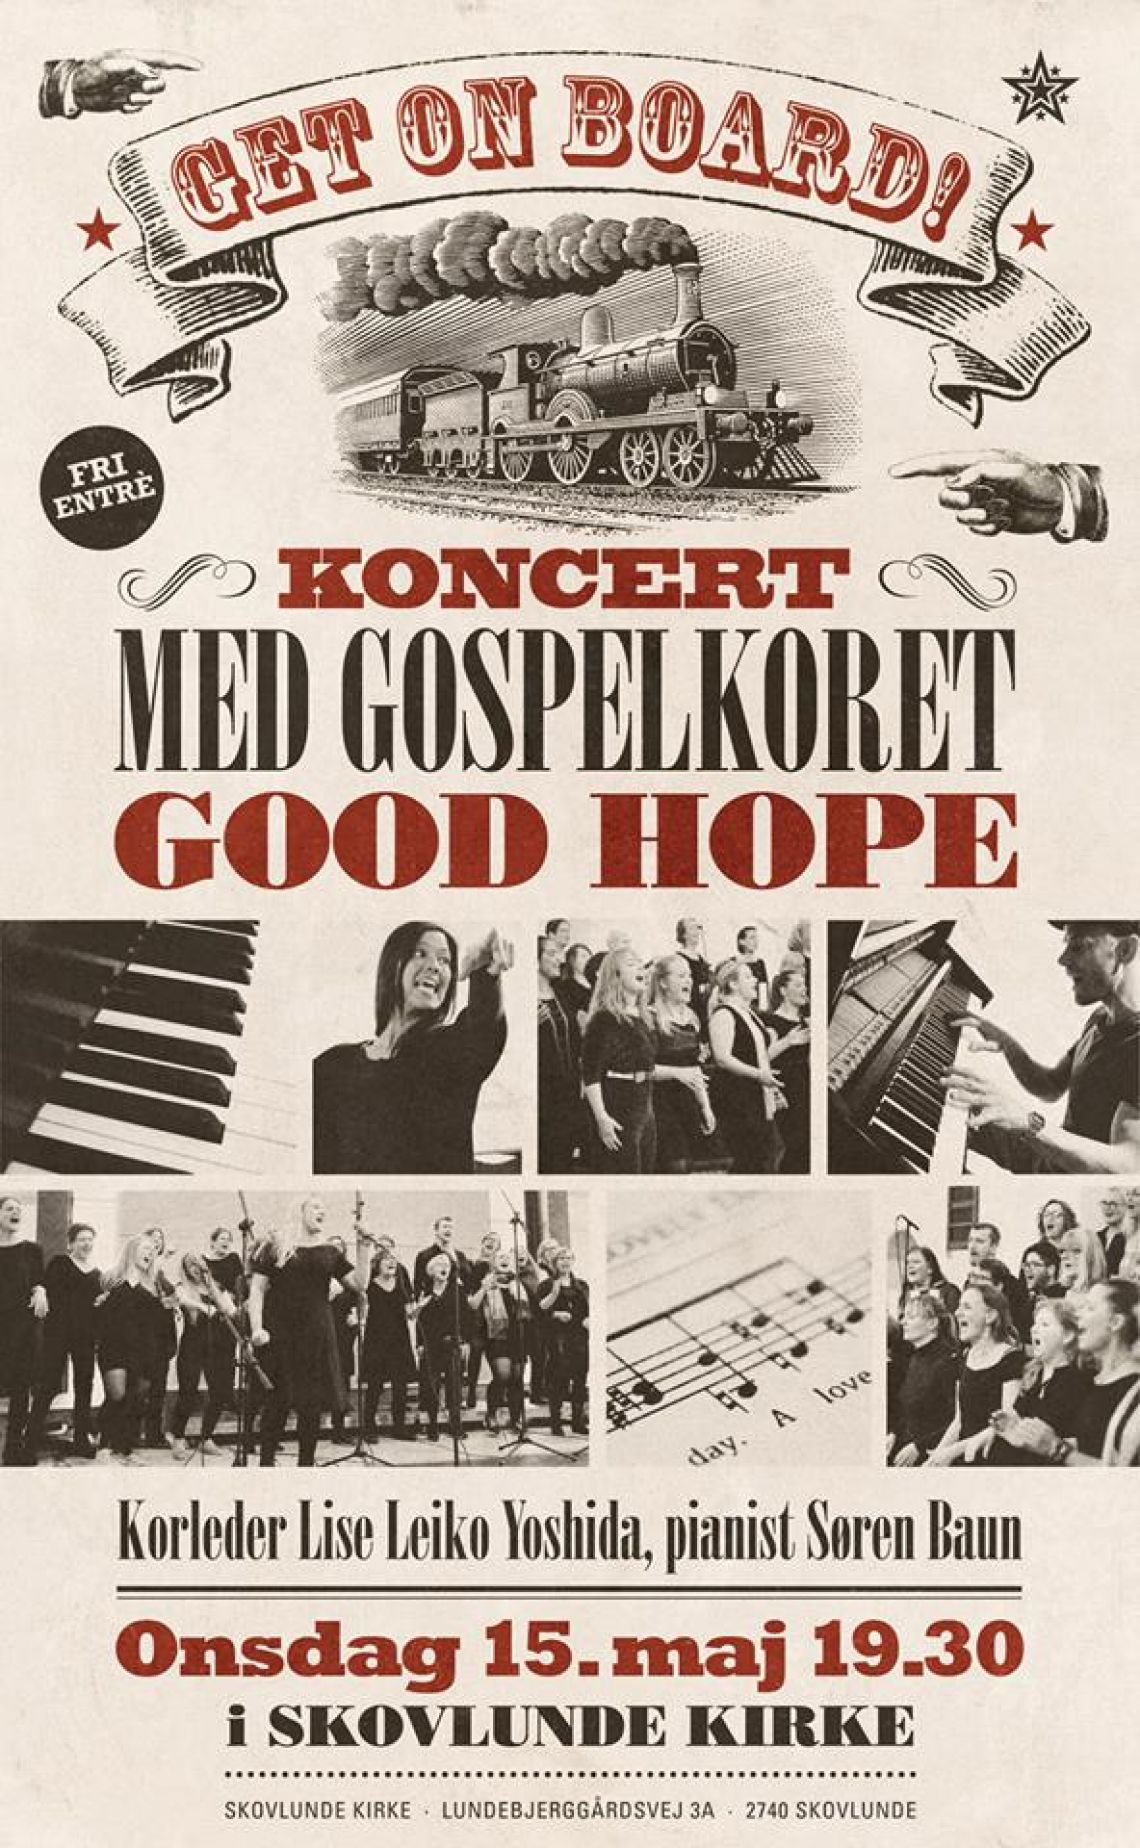 Gospelkoncert i Skovlunde Kirke: Get on board!